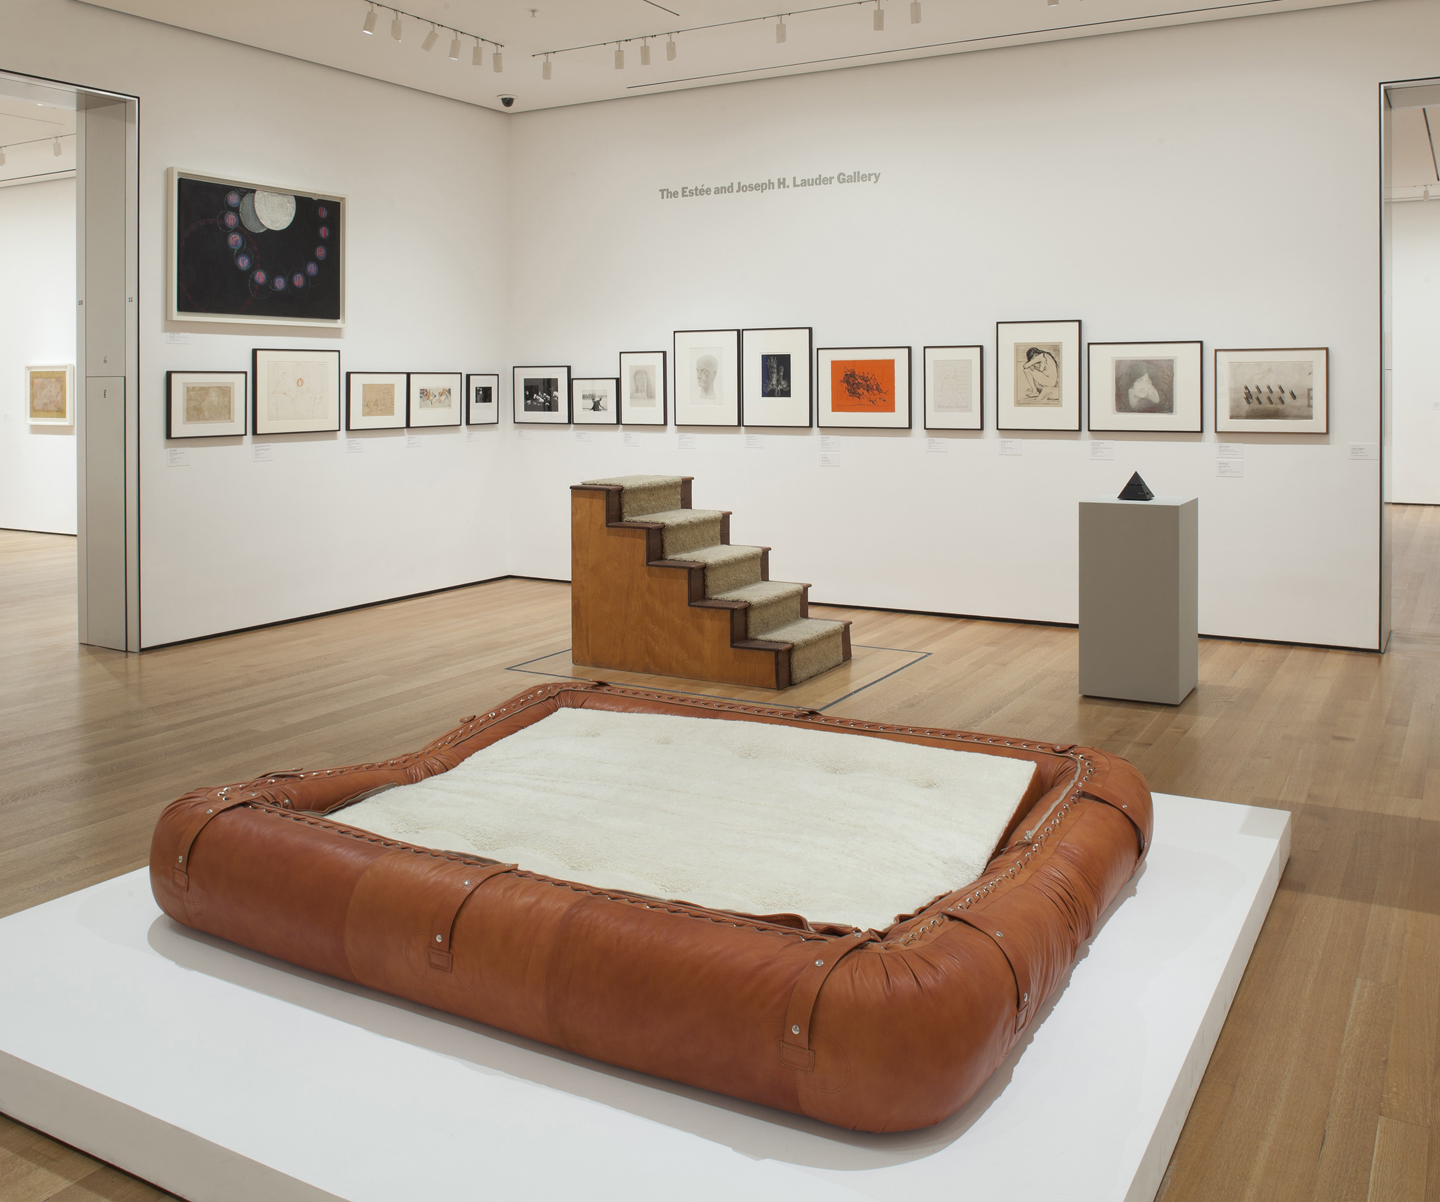 Artist's Choice: Trisha Donnelly installation view at The Museum of Modern Art, New York, 2012-2013. © 2016 The Museum of Modern Art. Photo: Thomas Griesel